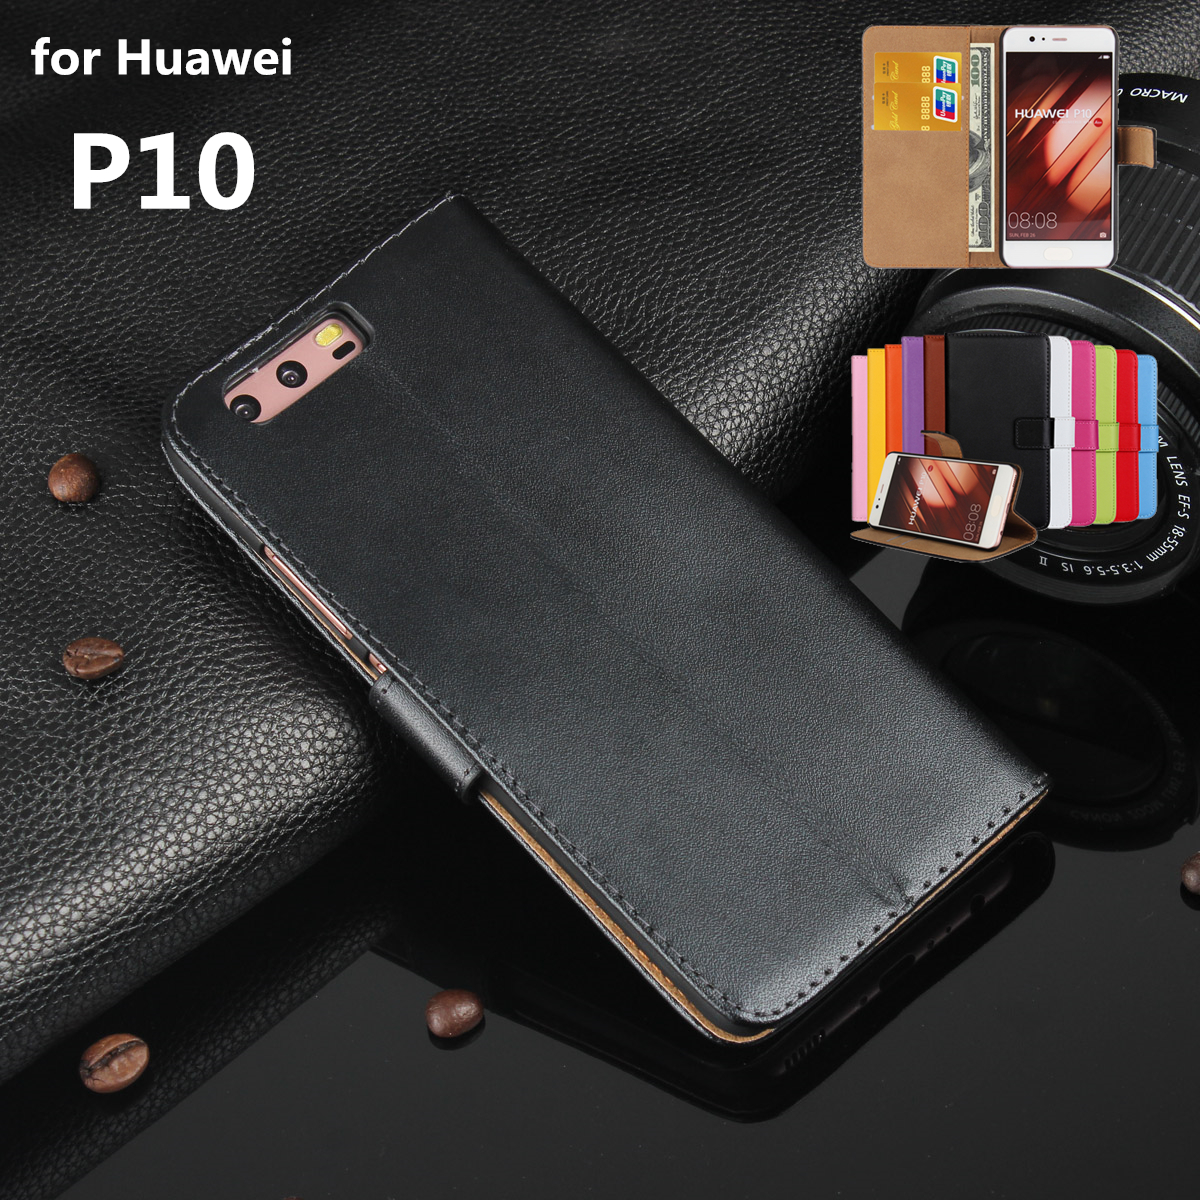 Premium Leather Flip Cover Luxury Wallet Phone Case For Huawei Ascend P10 Card Holder Holster Phone Shell For Huawei P10 GG